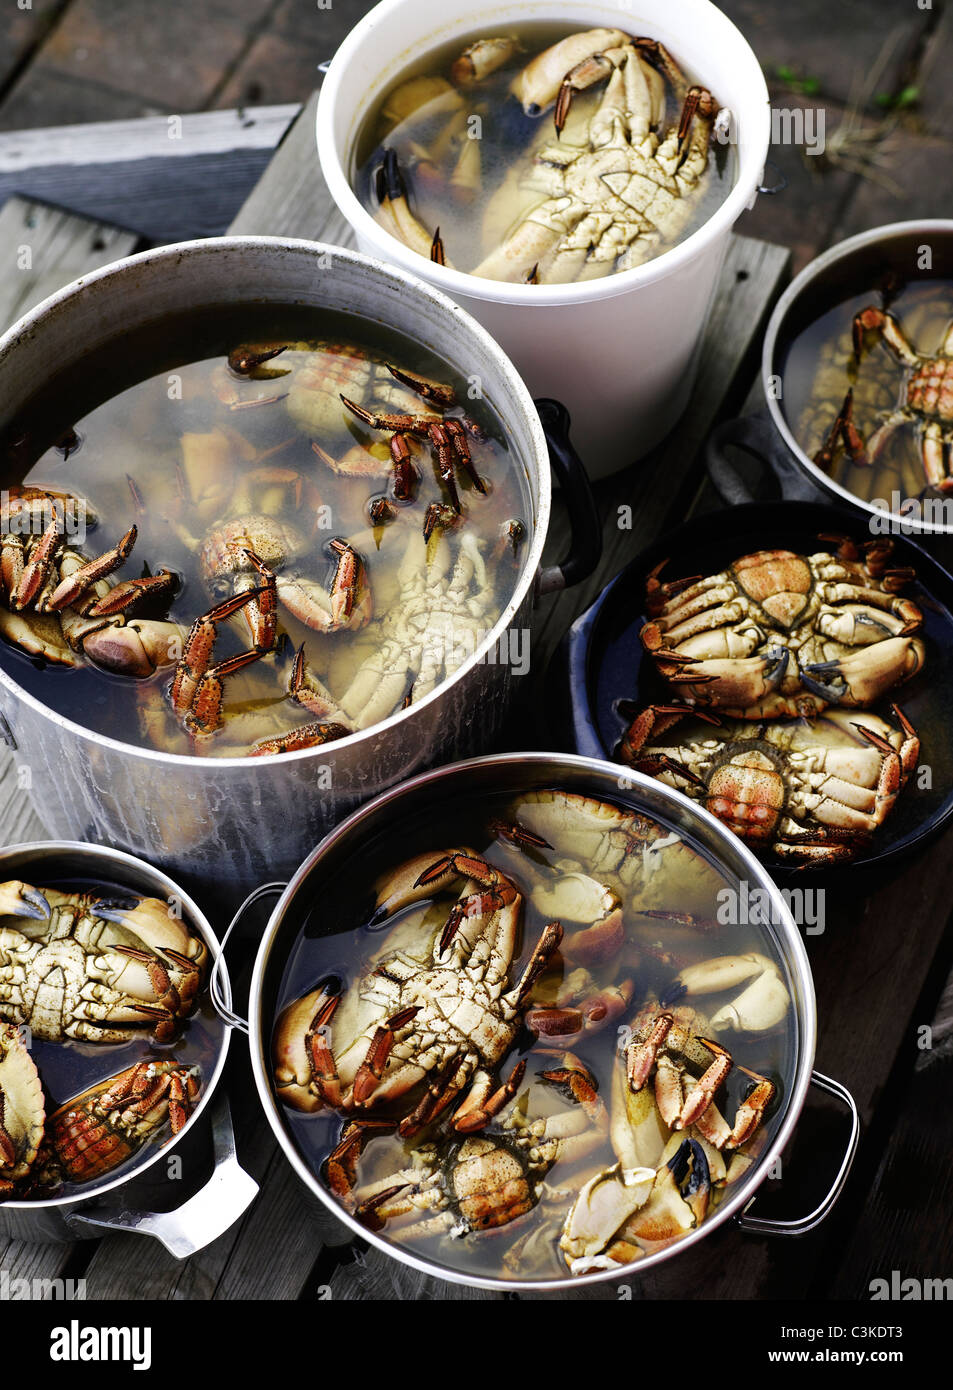 Crabs in saucepan - Stock Image